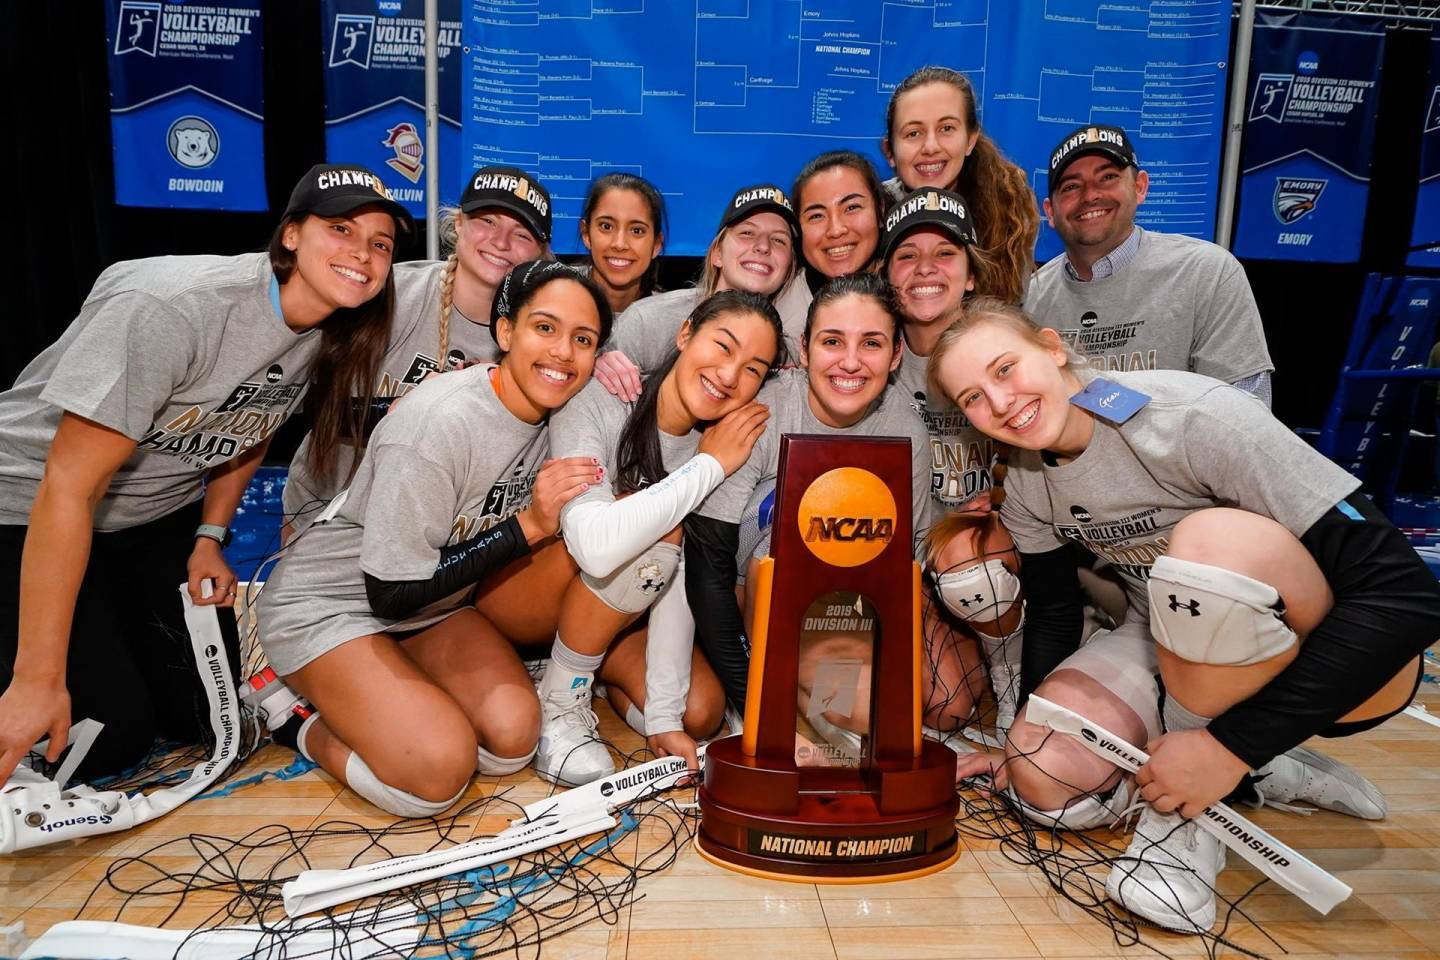 Volleyball team poses with the NCAA championship trophy